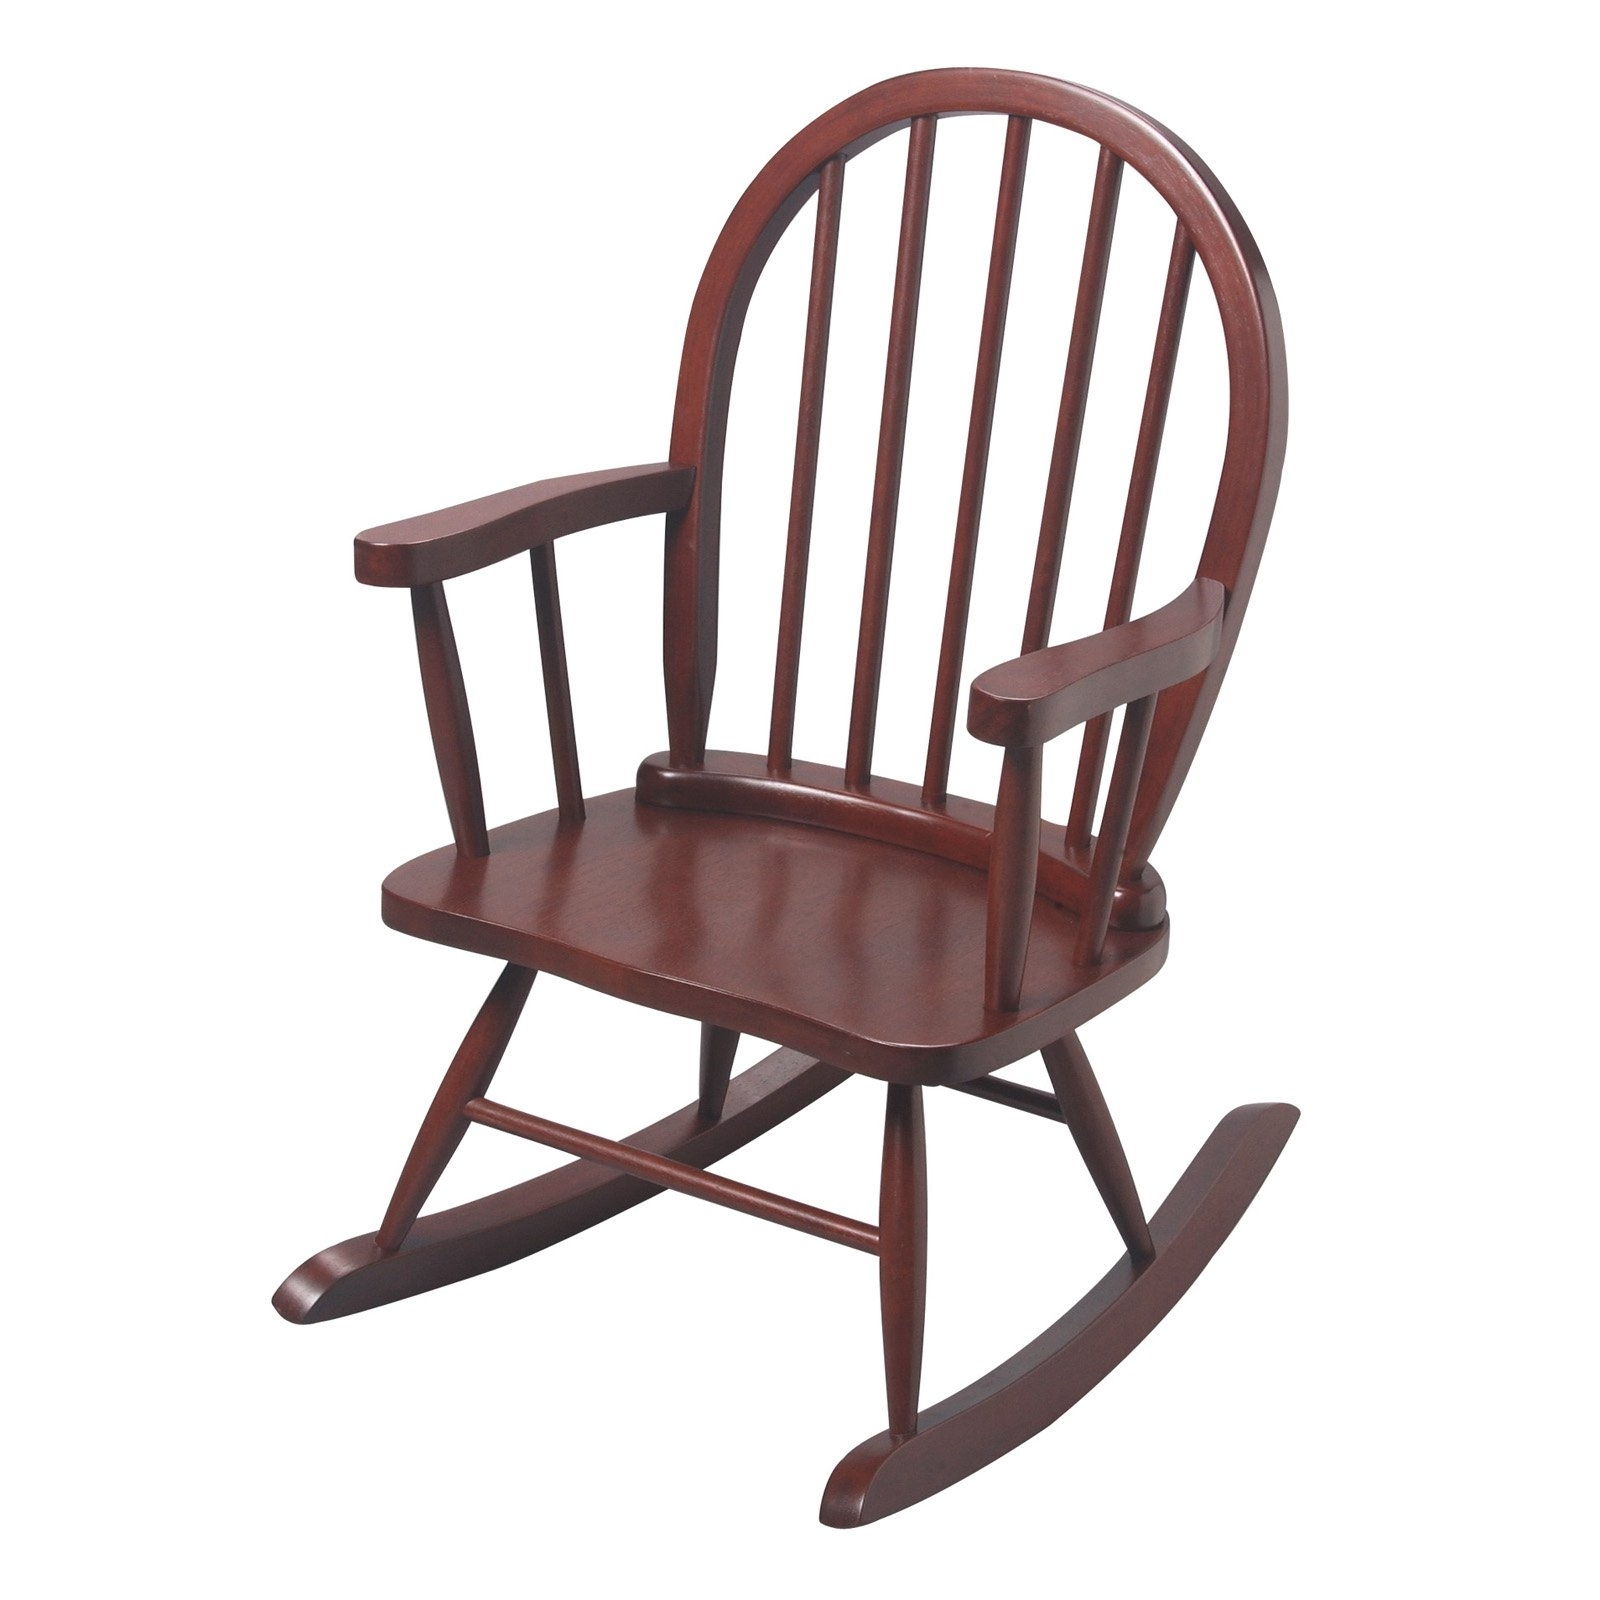 Well Known Rocking Chairs For Toddlers Inside Gift Mark Windsor Childrens 3600 Rocking Chair – Cherry – Walmart (View 18 of 20)